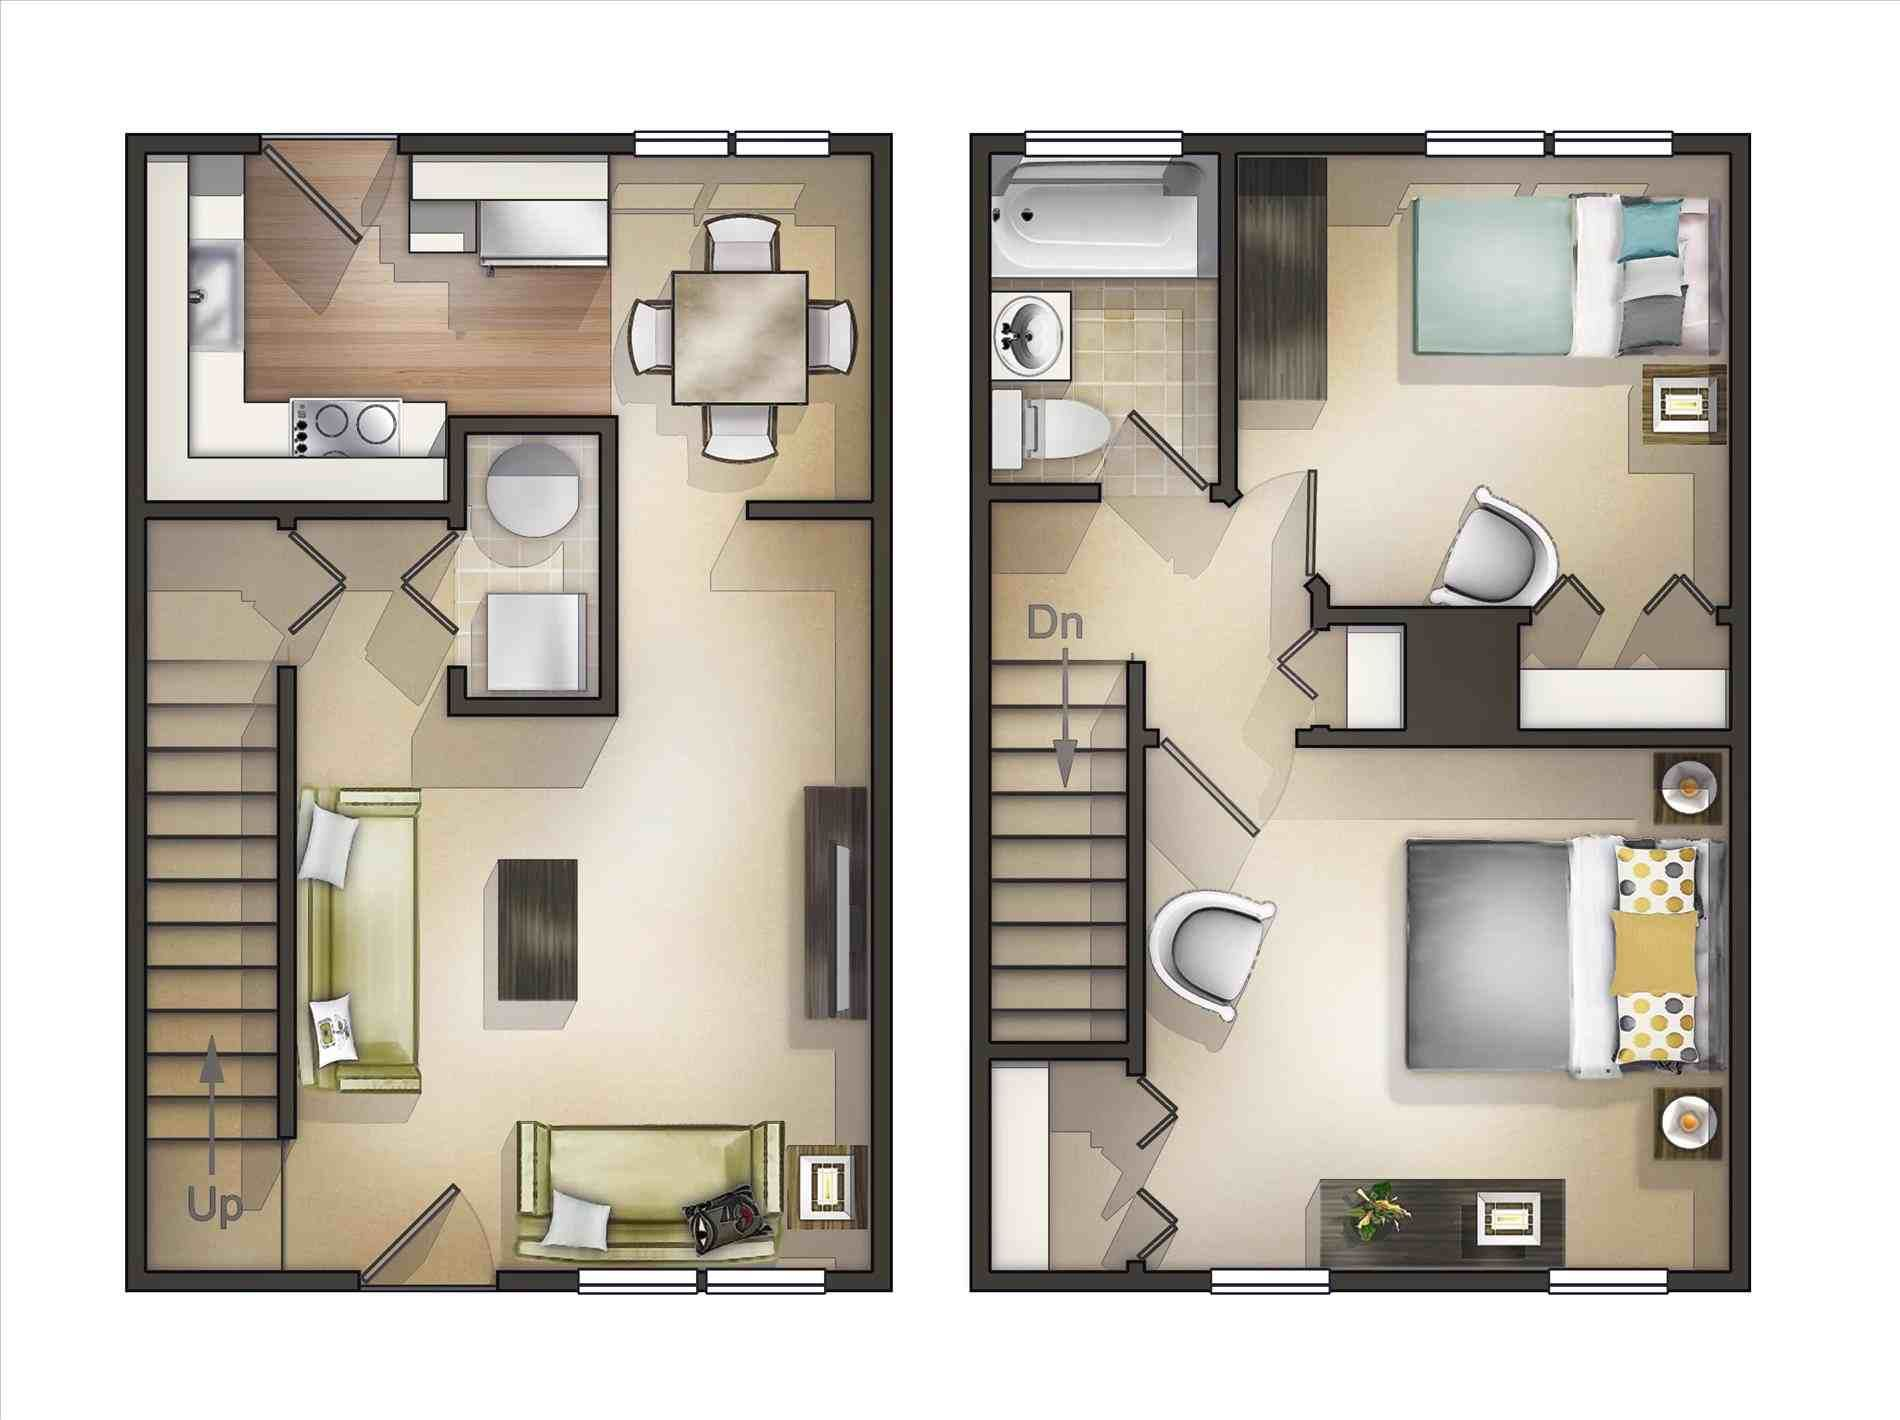 2 Bedroom Apartment Interior Design This 2 Bedroom Apartment Nyc Rent  Finding A Roommate In Nyc